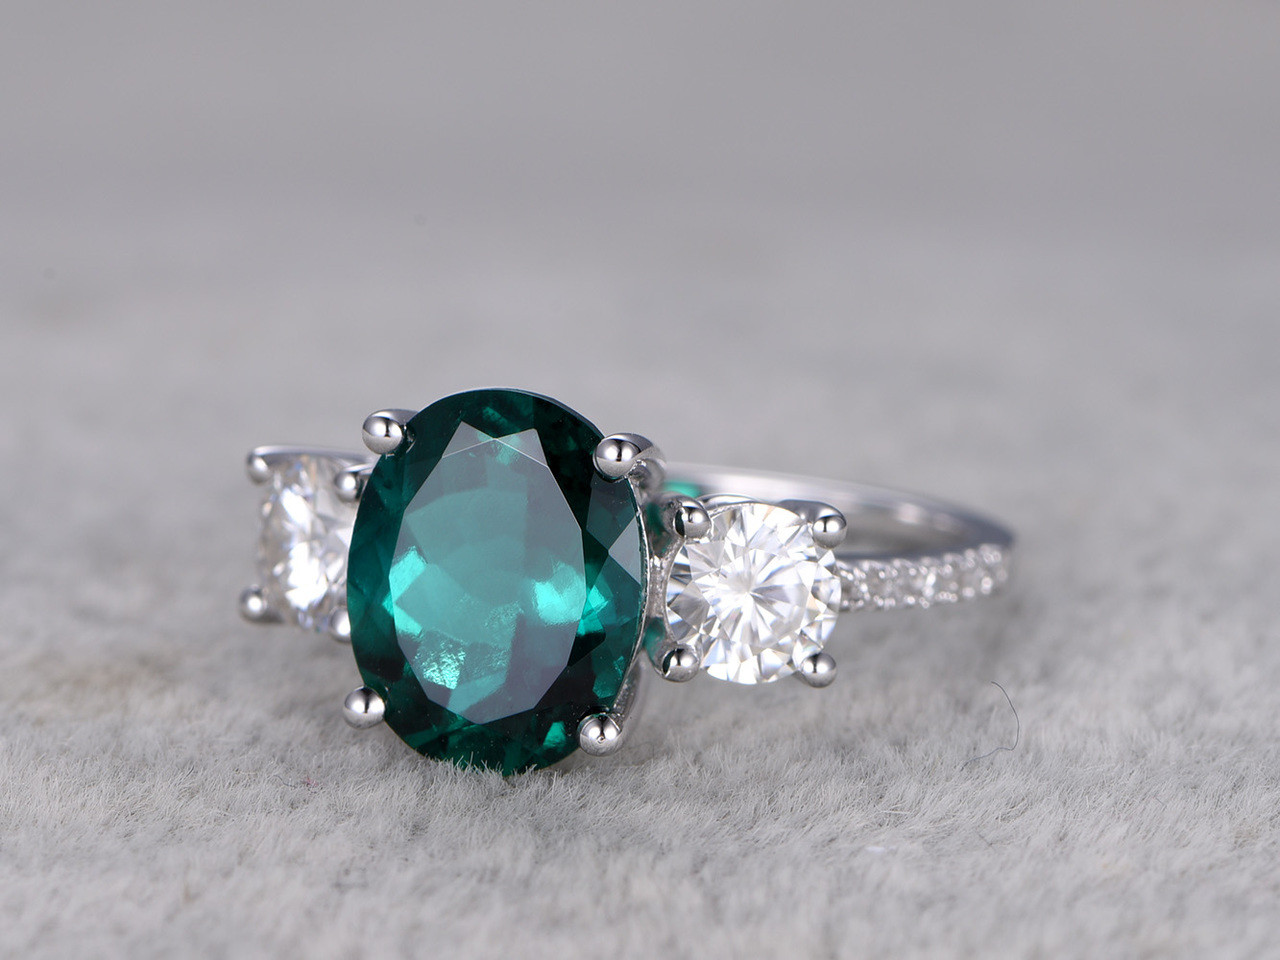 emerald engagement diamond rings jewellery with vintage or style cluster oval halo gemstone diamonds may cut products ring